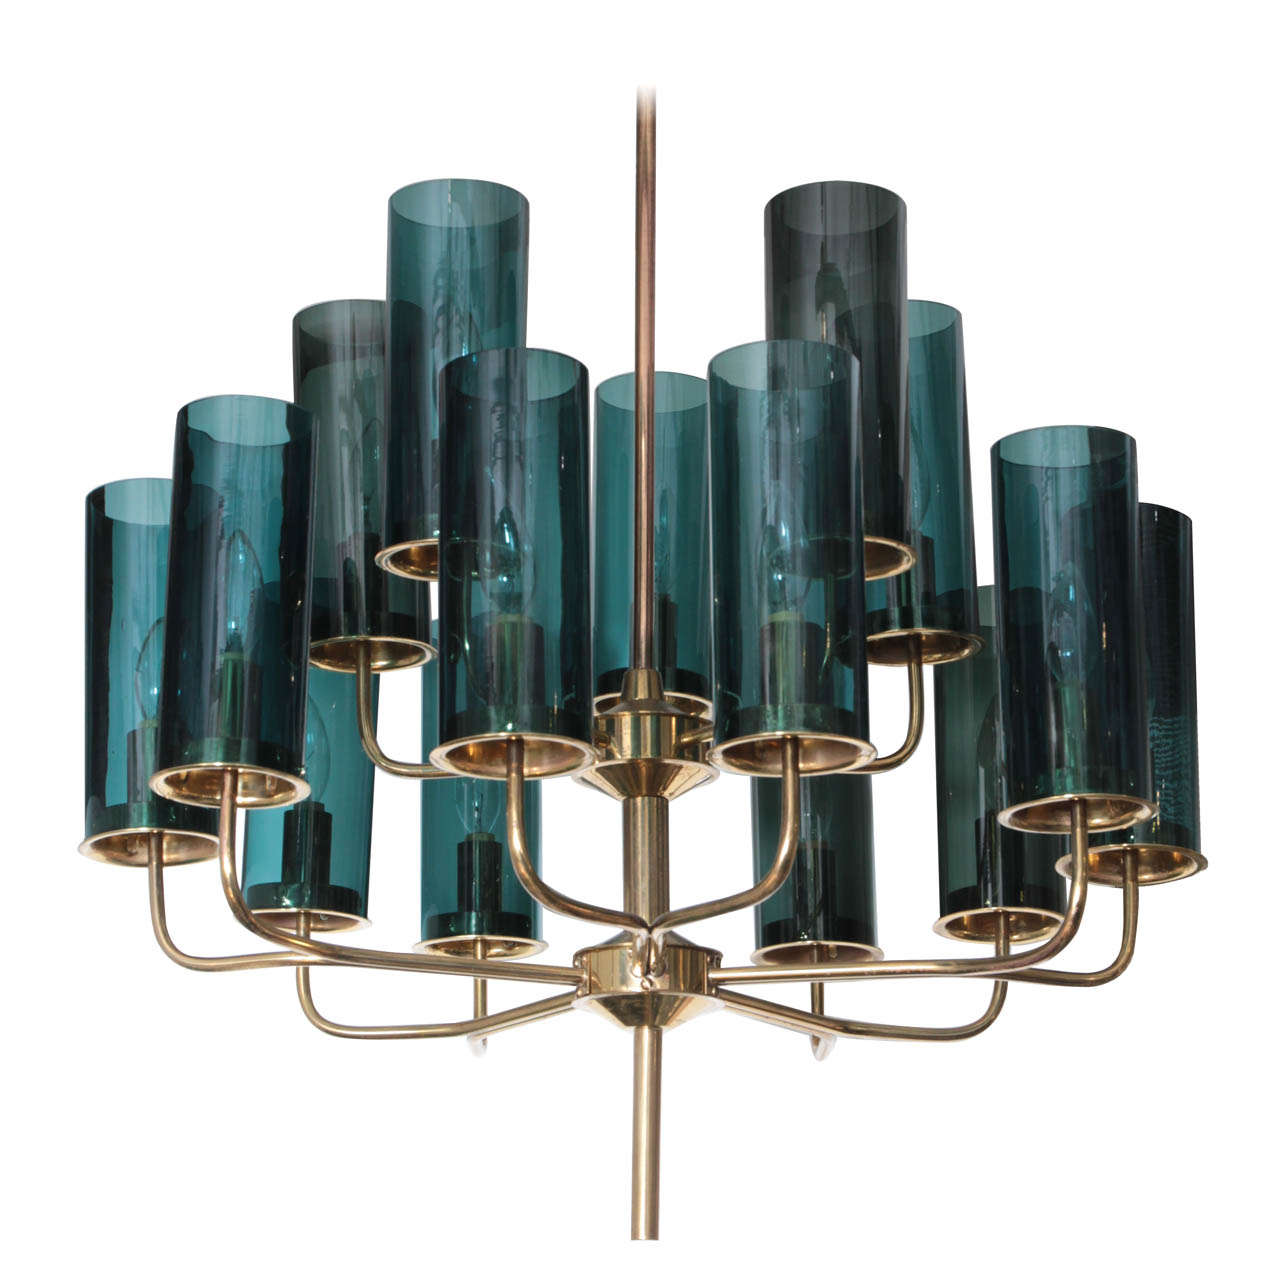 Brass and blue glass tube chandelier by hans agne jakobsson at 1stdibs brass blue glass tube chandelier by hans agne jakobsson for sale aloadofball Images